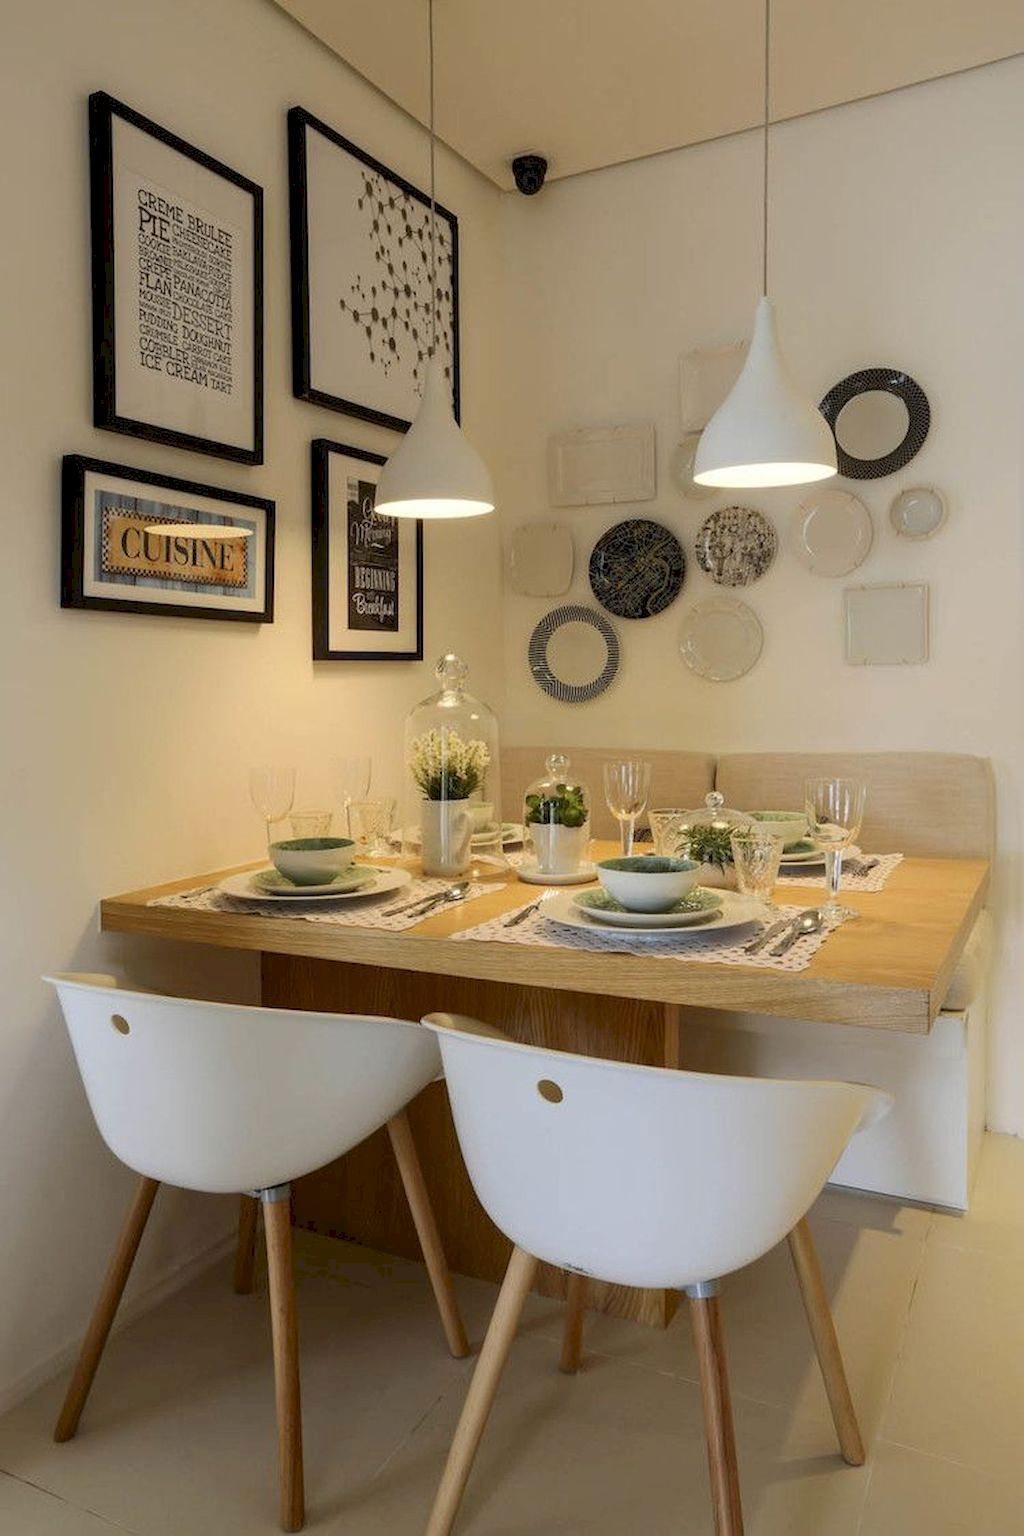 Small Dining Room Design Ideas Apartment Therapy 7 Home Design